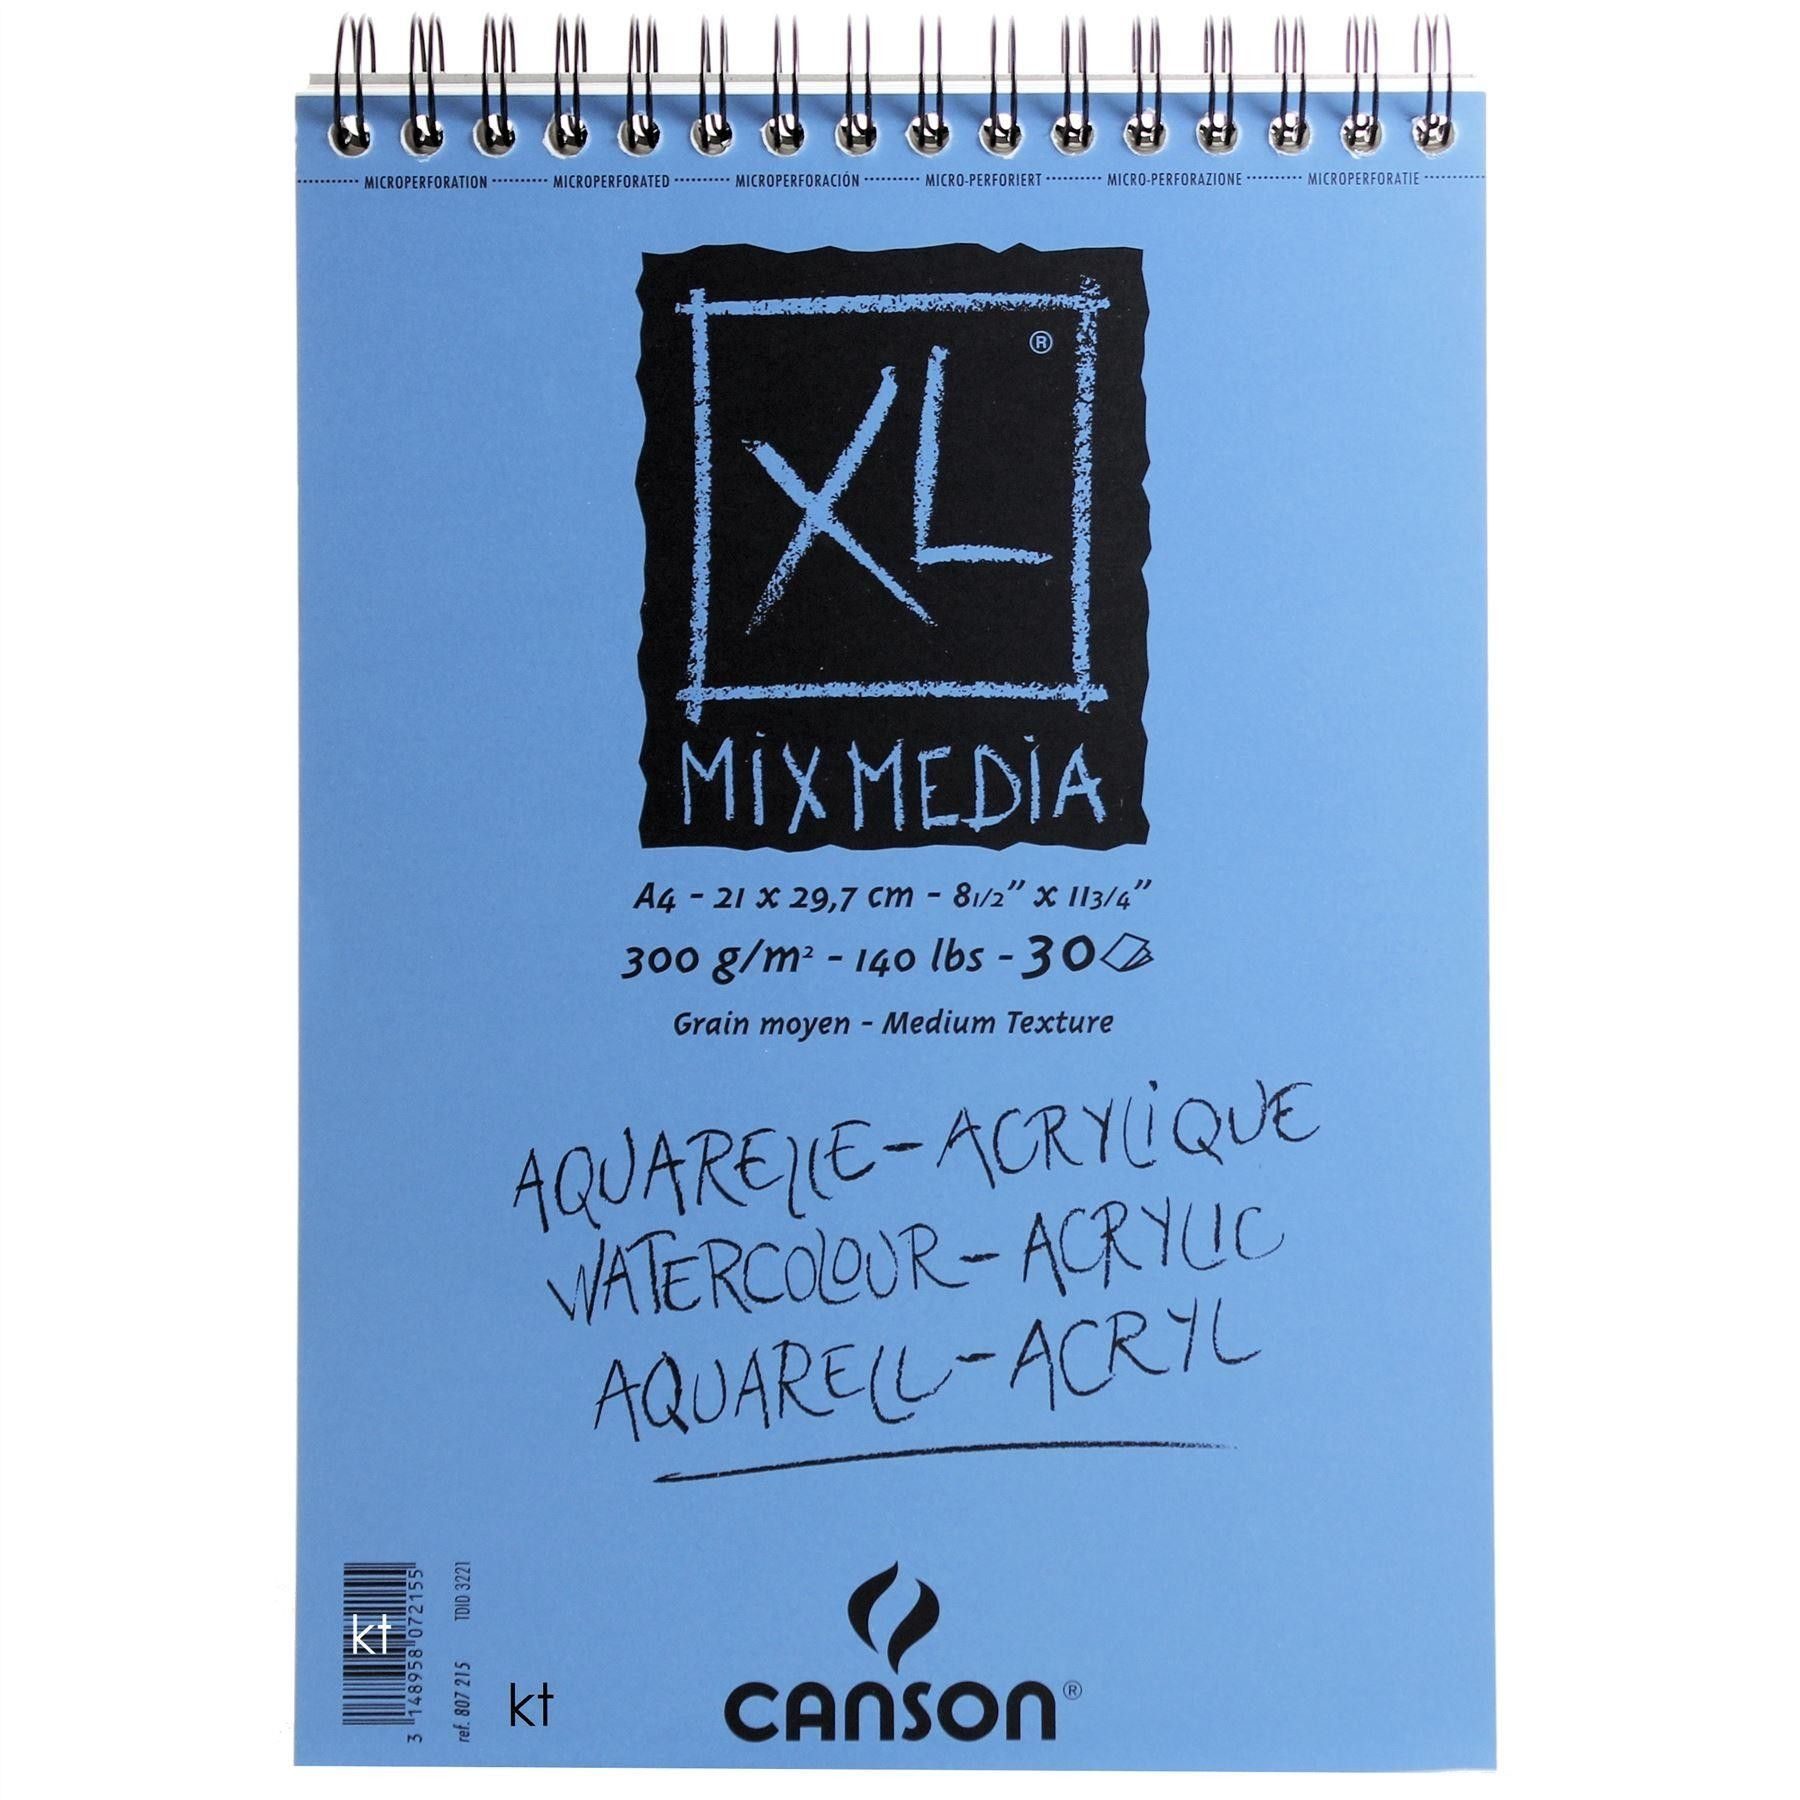 Canson Xl Mixed Media Paper Pad 300gsm 30 Sheets In 2020 Paper